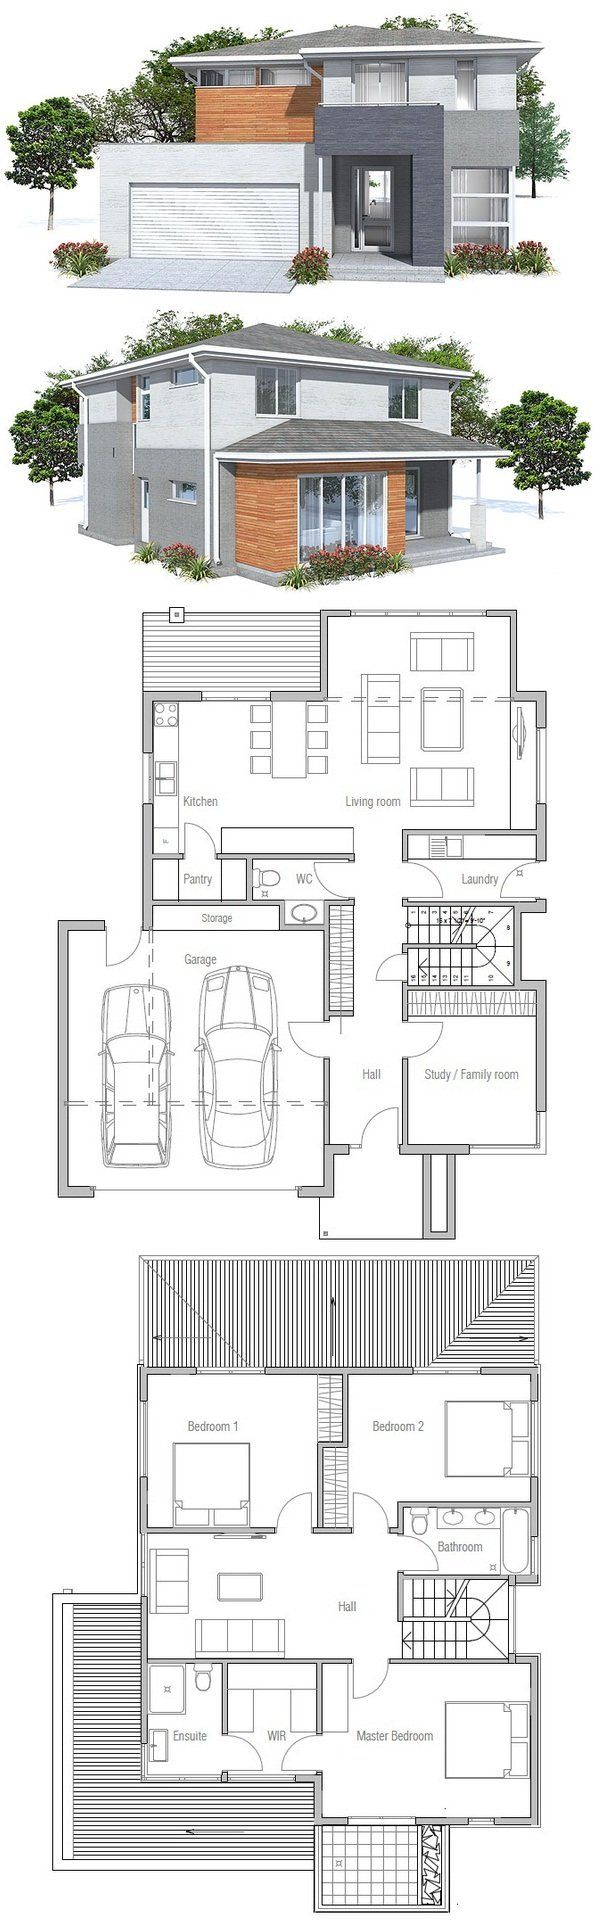 Best 25 modern house plans ideas on pinterest modern Home design house plans